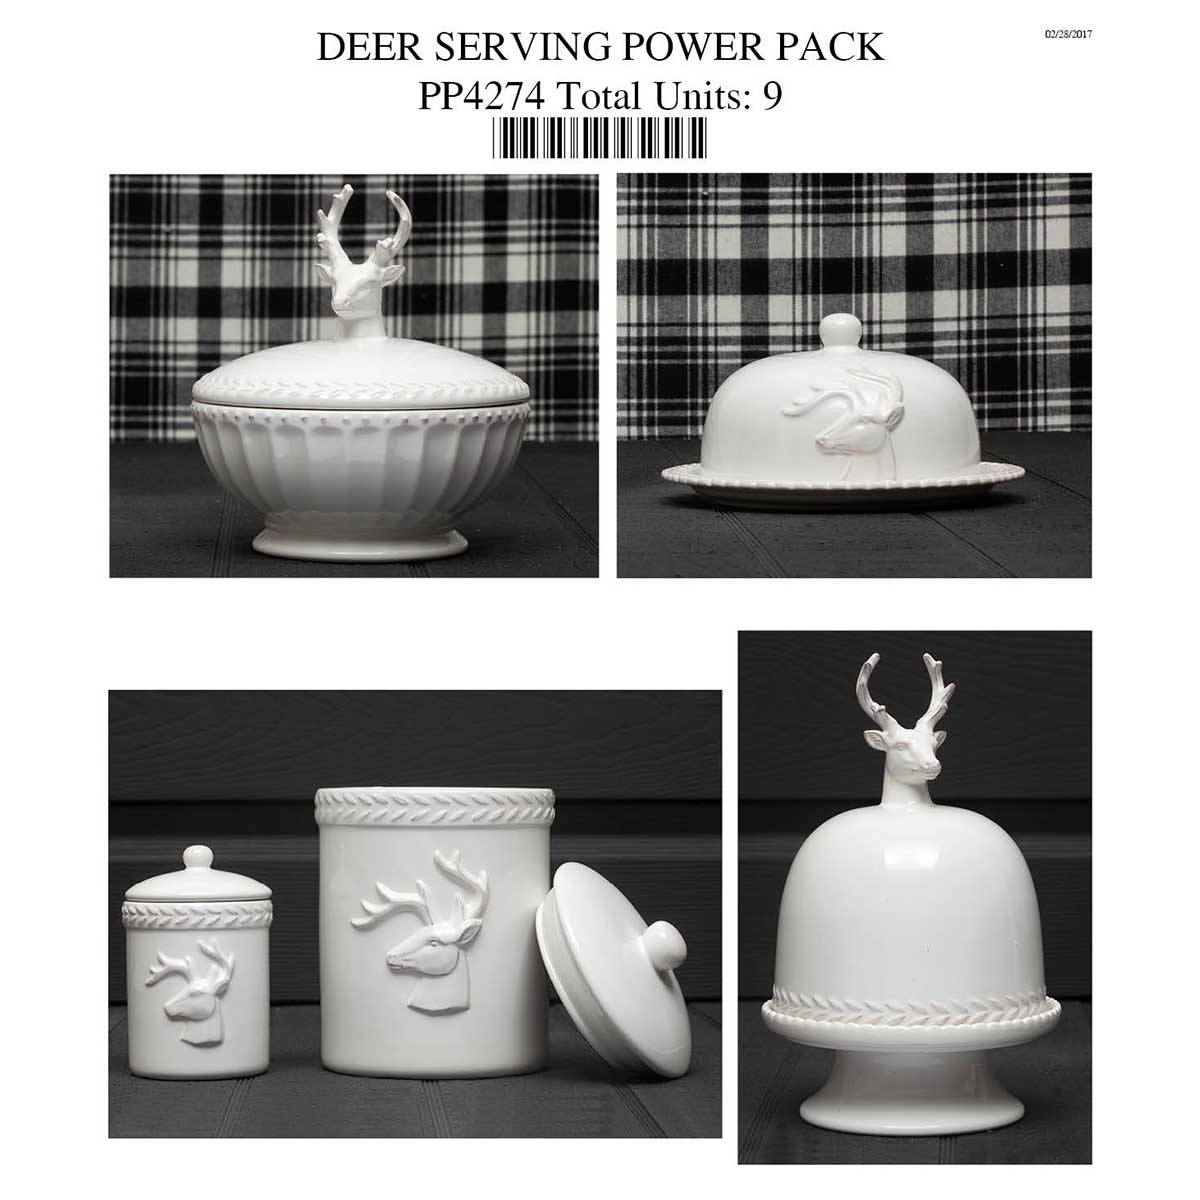 DEER CANNISTER, DISH, CLOCHE POWER PACK 9 units PP4274